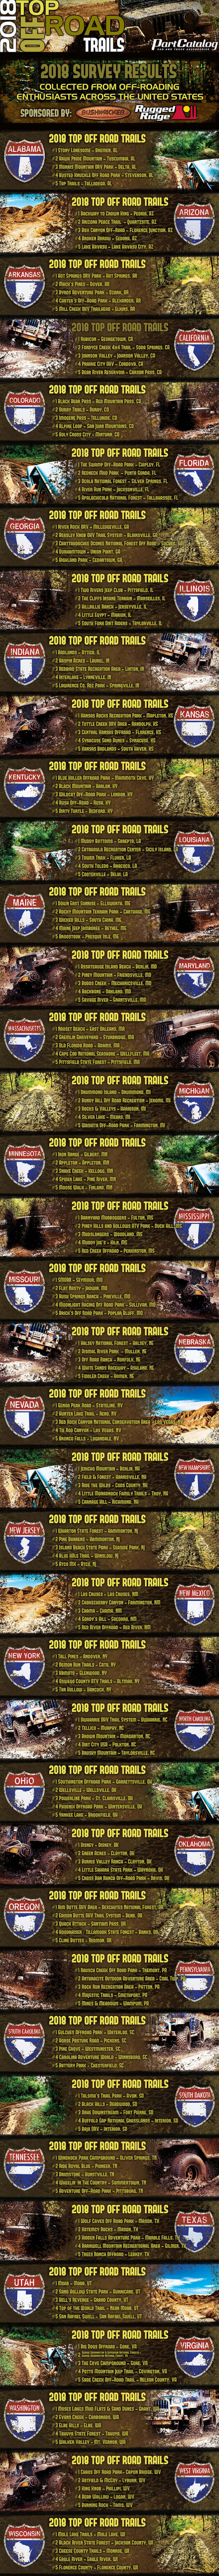 Top Off-Road Trails & Parks In America: Let's Get Dirty! 18